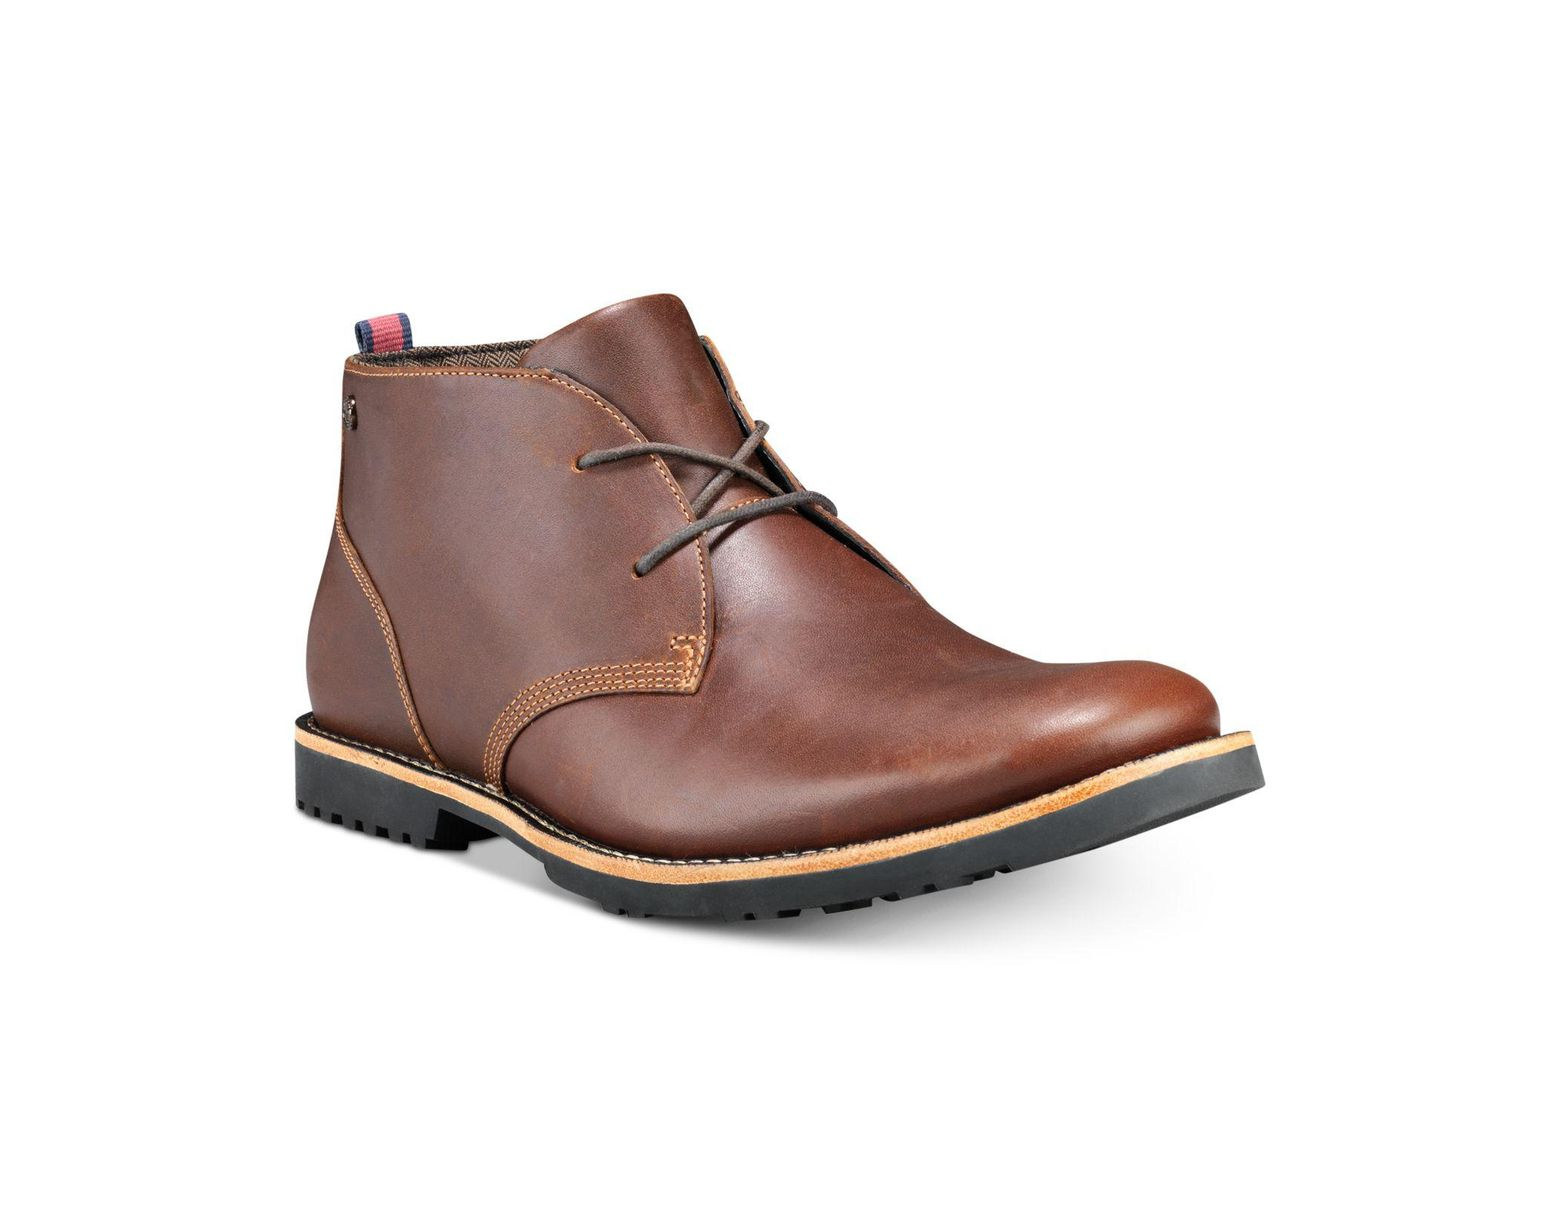 809caa65366 Men's Brown Richdale Leather Chukka Boots, Created For Macy's